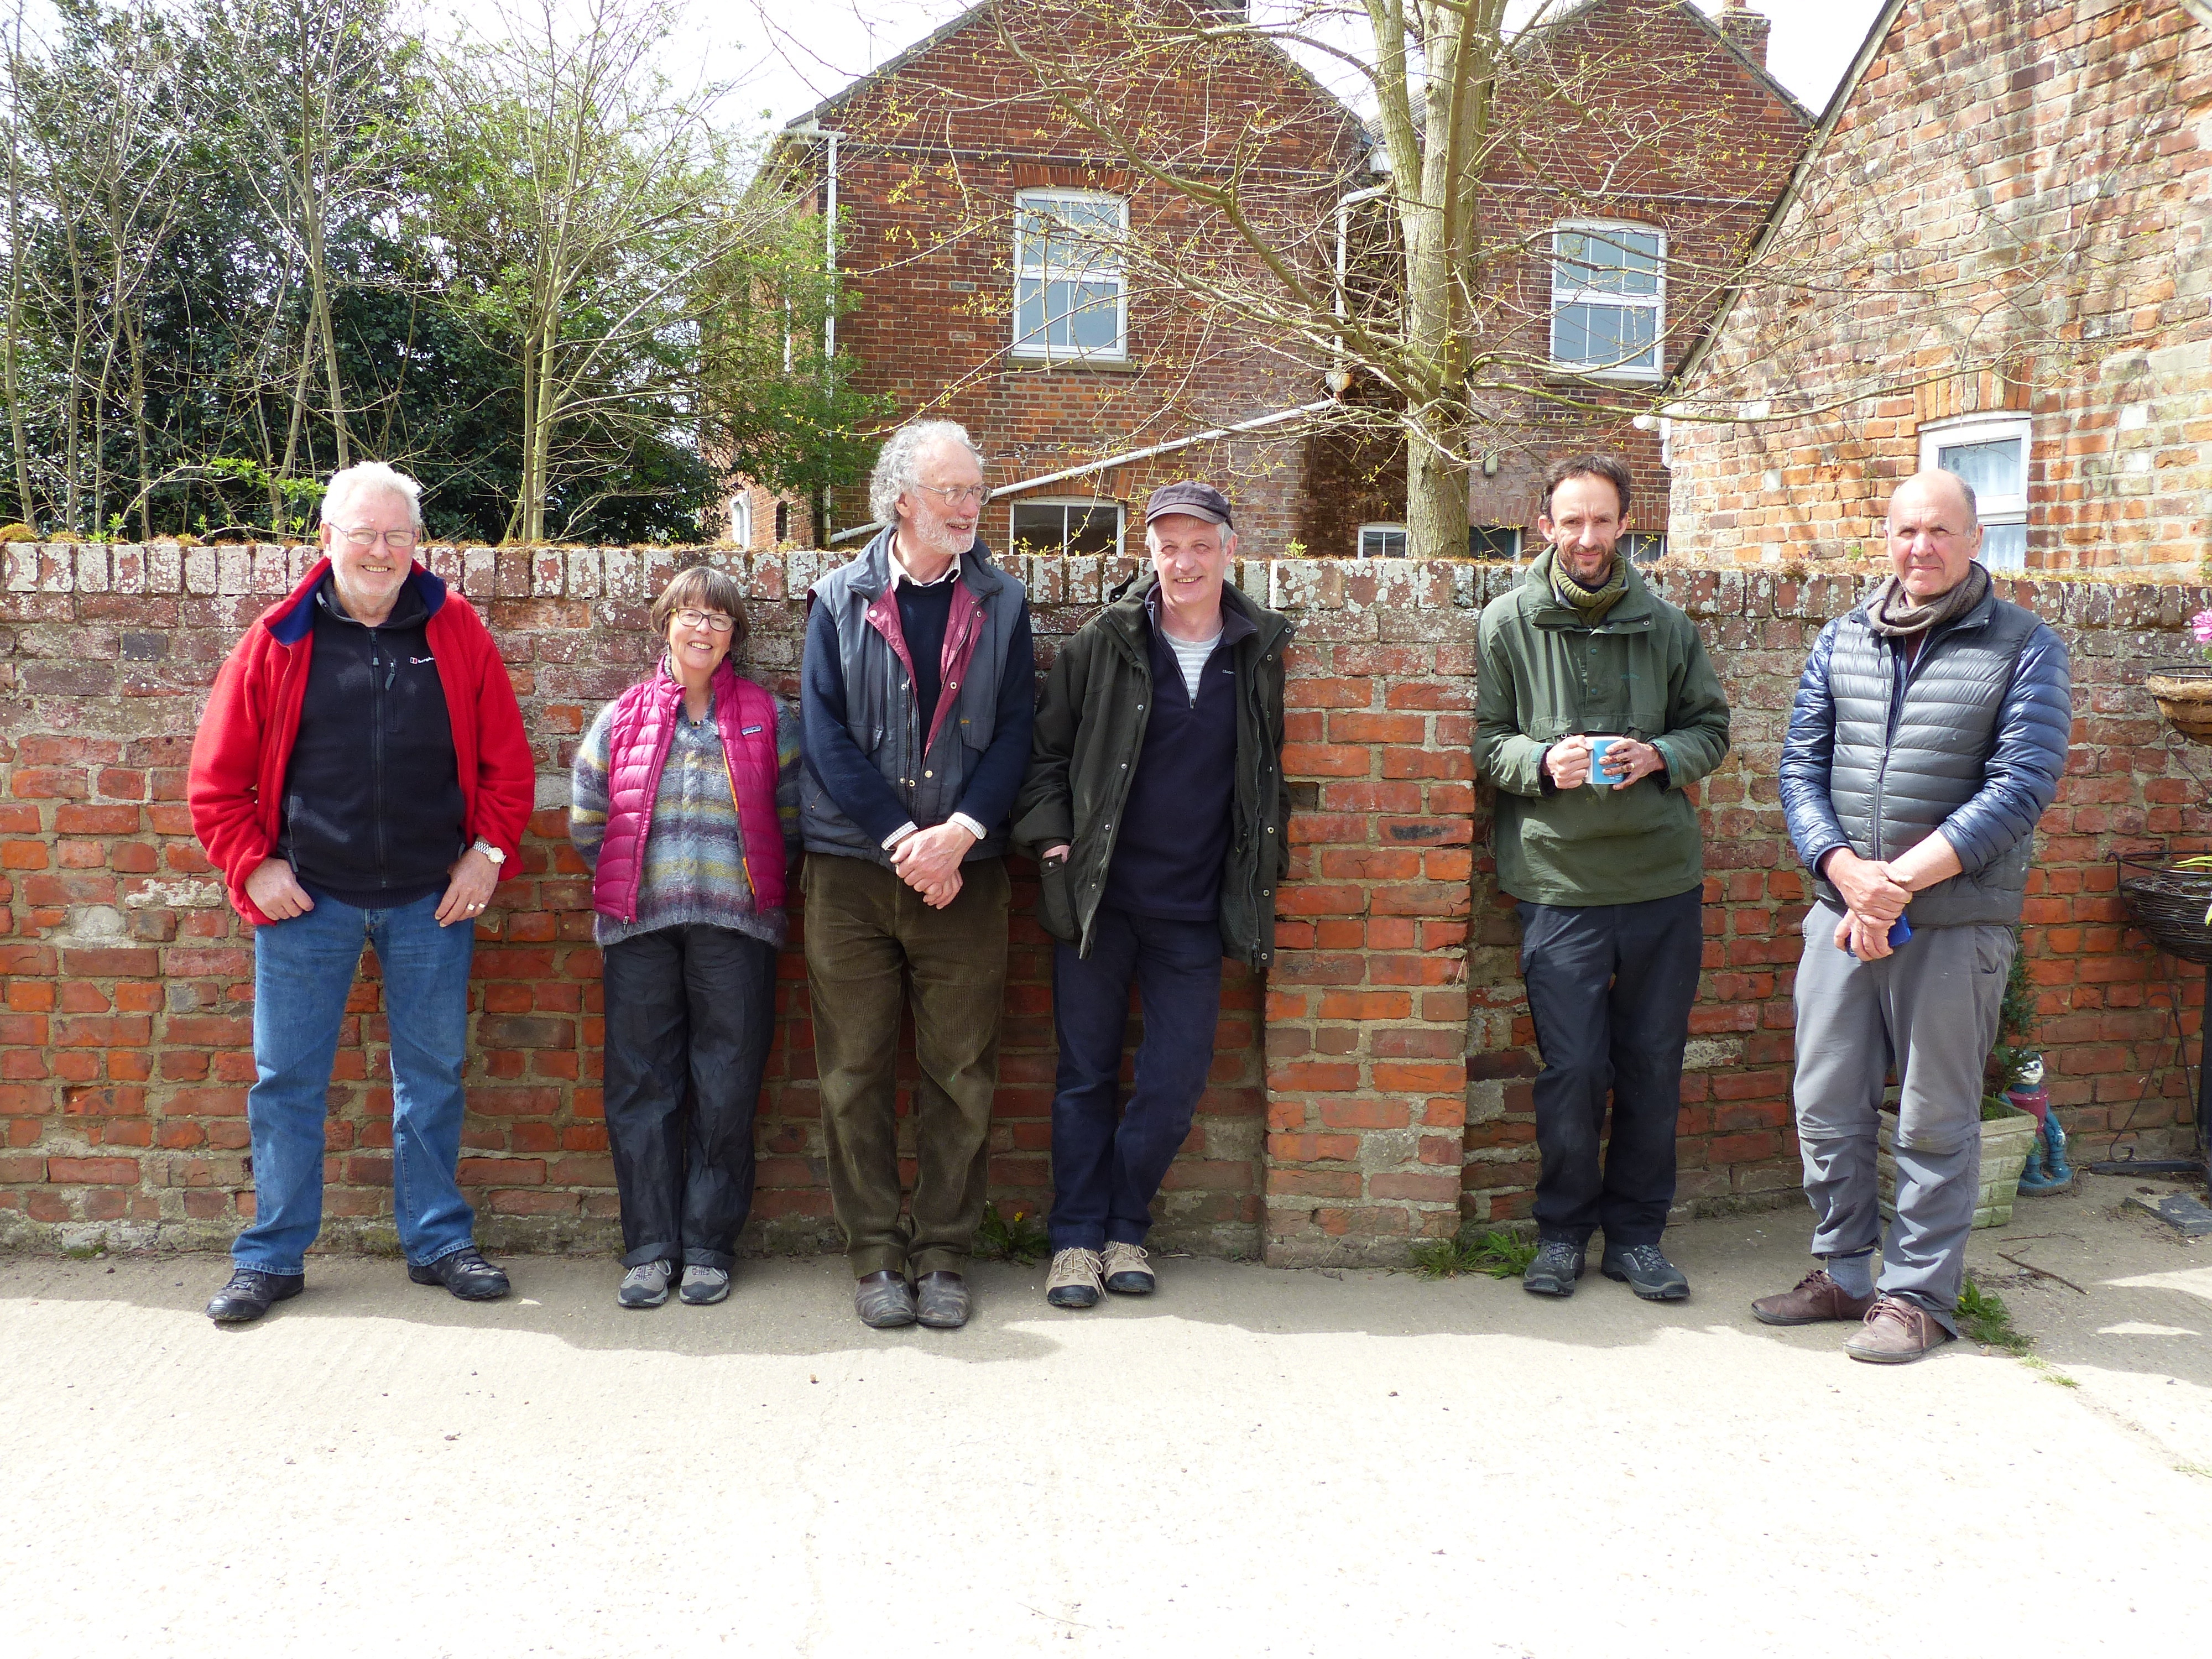 <p>SWLA Artists on the 1st residency: Peter Partington, Julia Manning, Mike Warrren, Brin Edwards, Nik Pollard and Greg Poole</p>